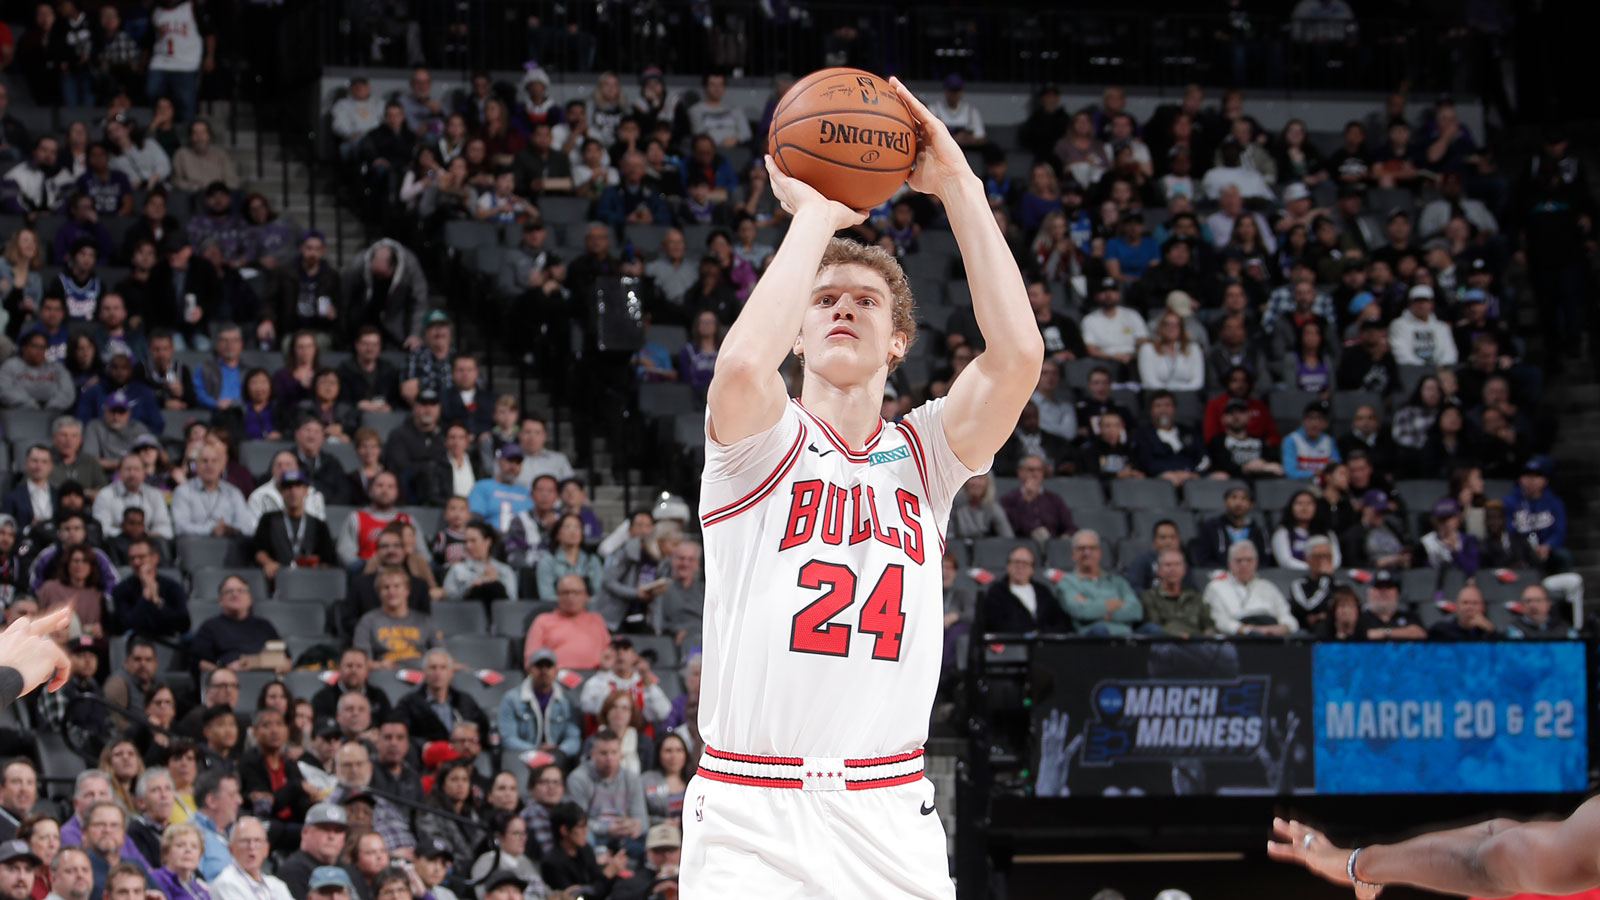 Lauri Markkanen attempts a three against the Kings